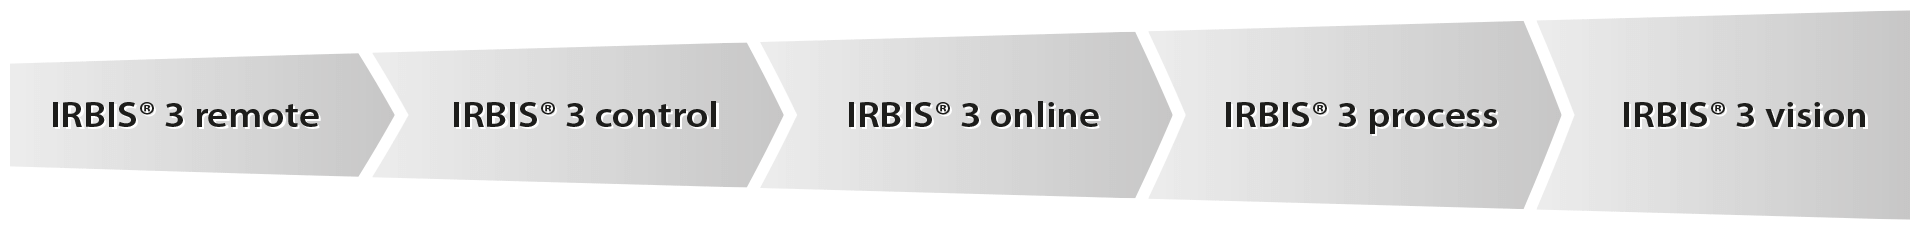 Thermographic software IRBIS® 3 extension modules